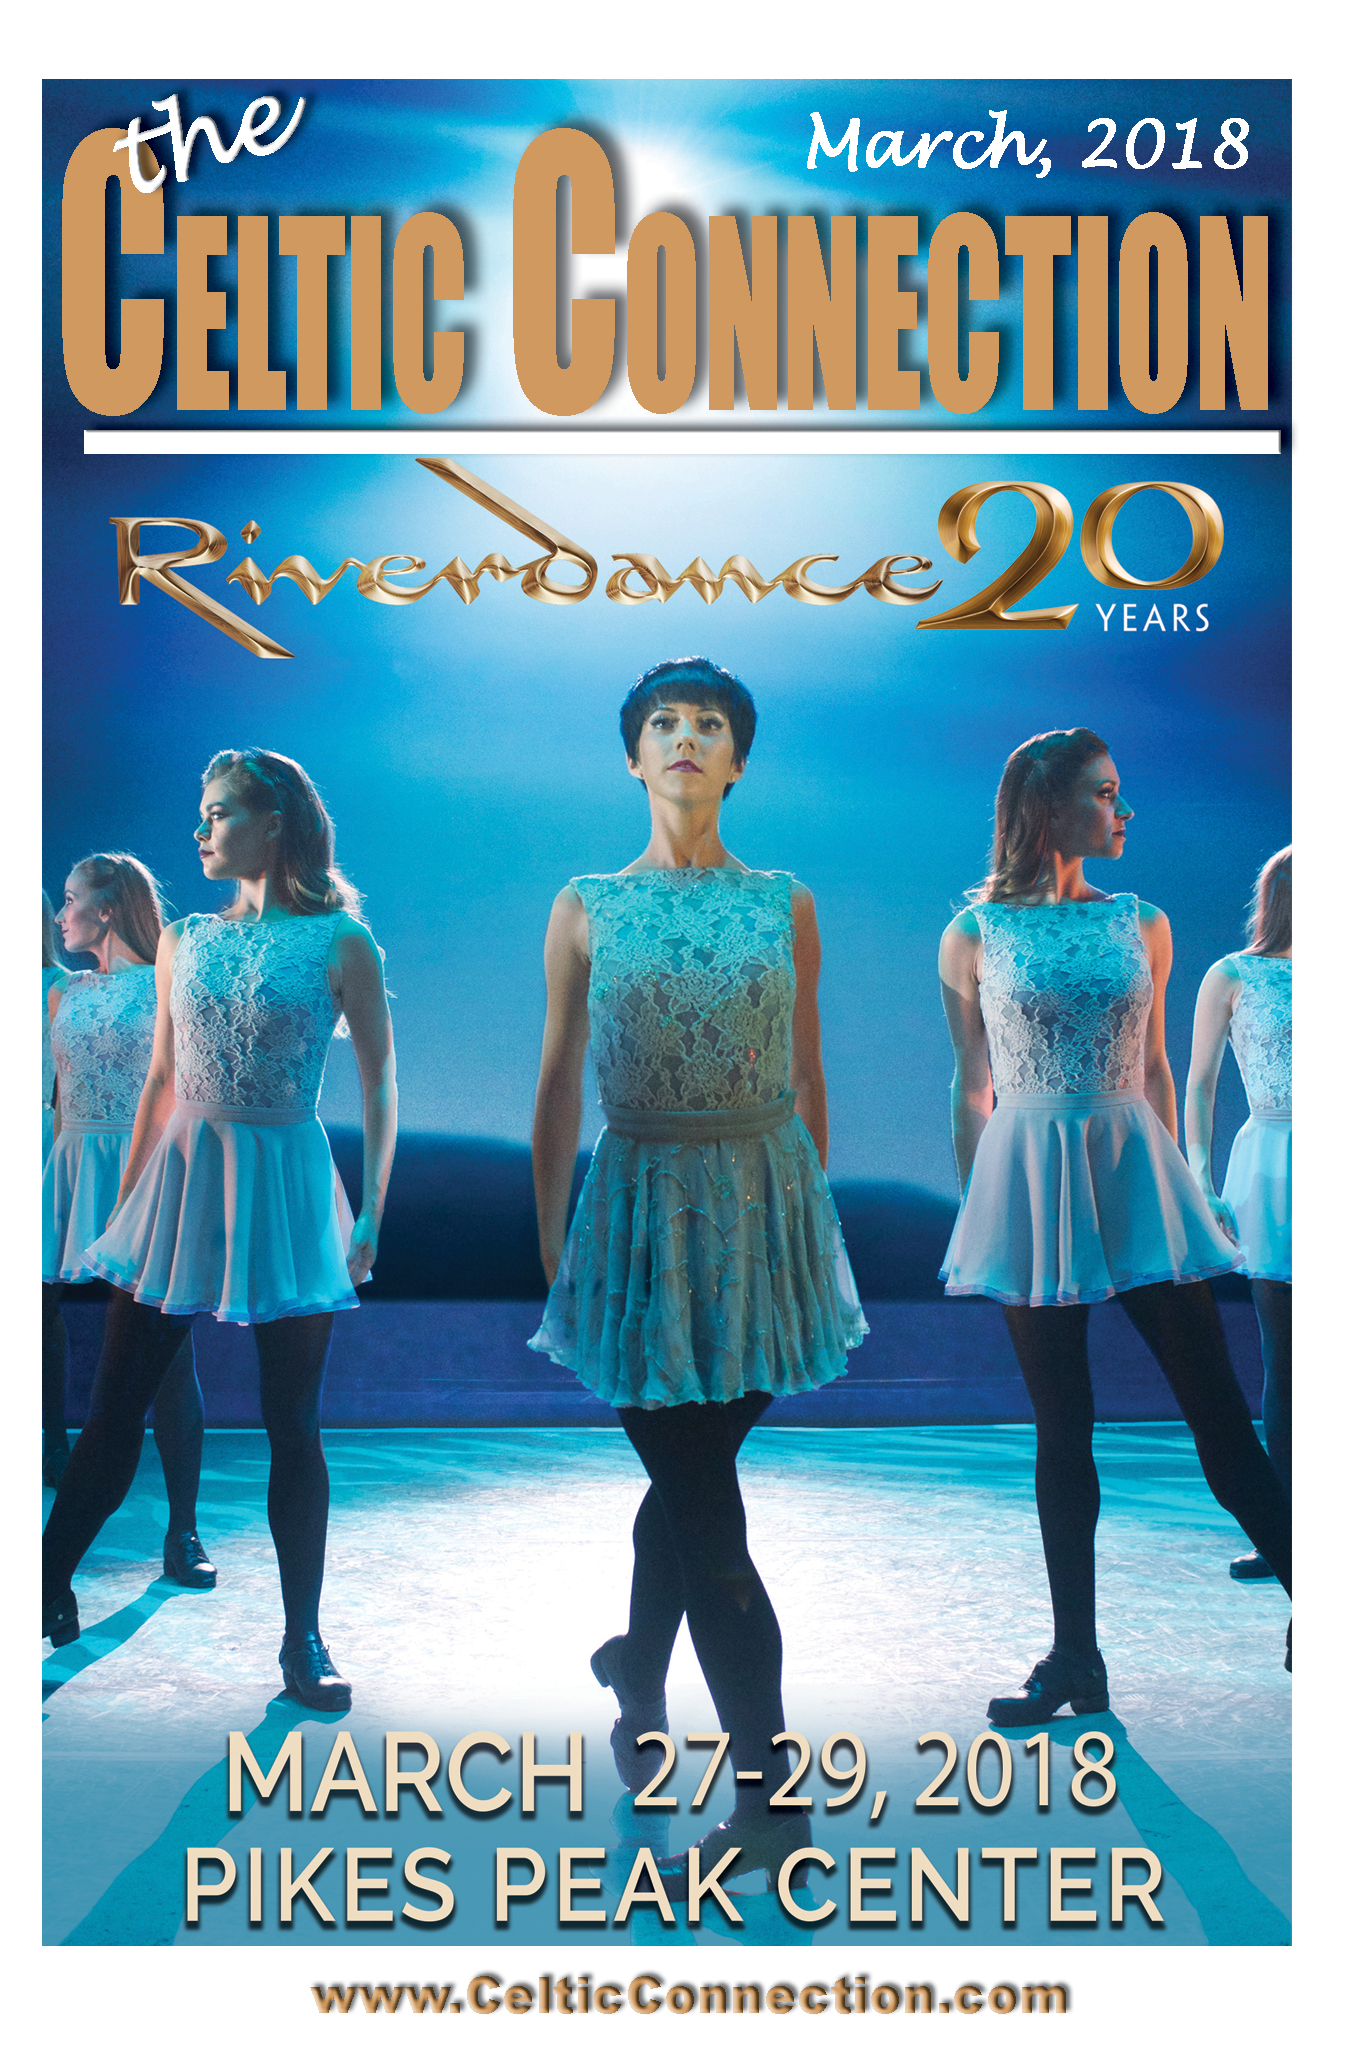 Celtic Connection March 2018 Entertainment and Events Guide